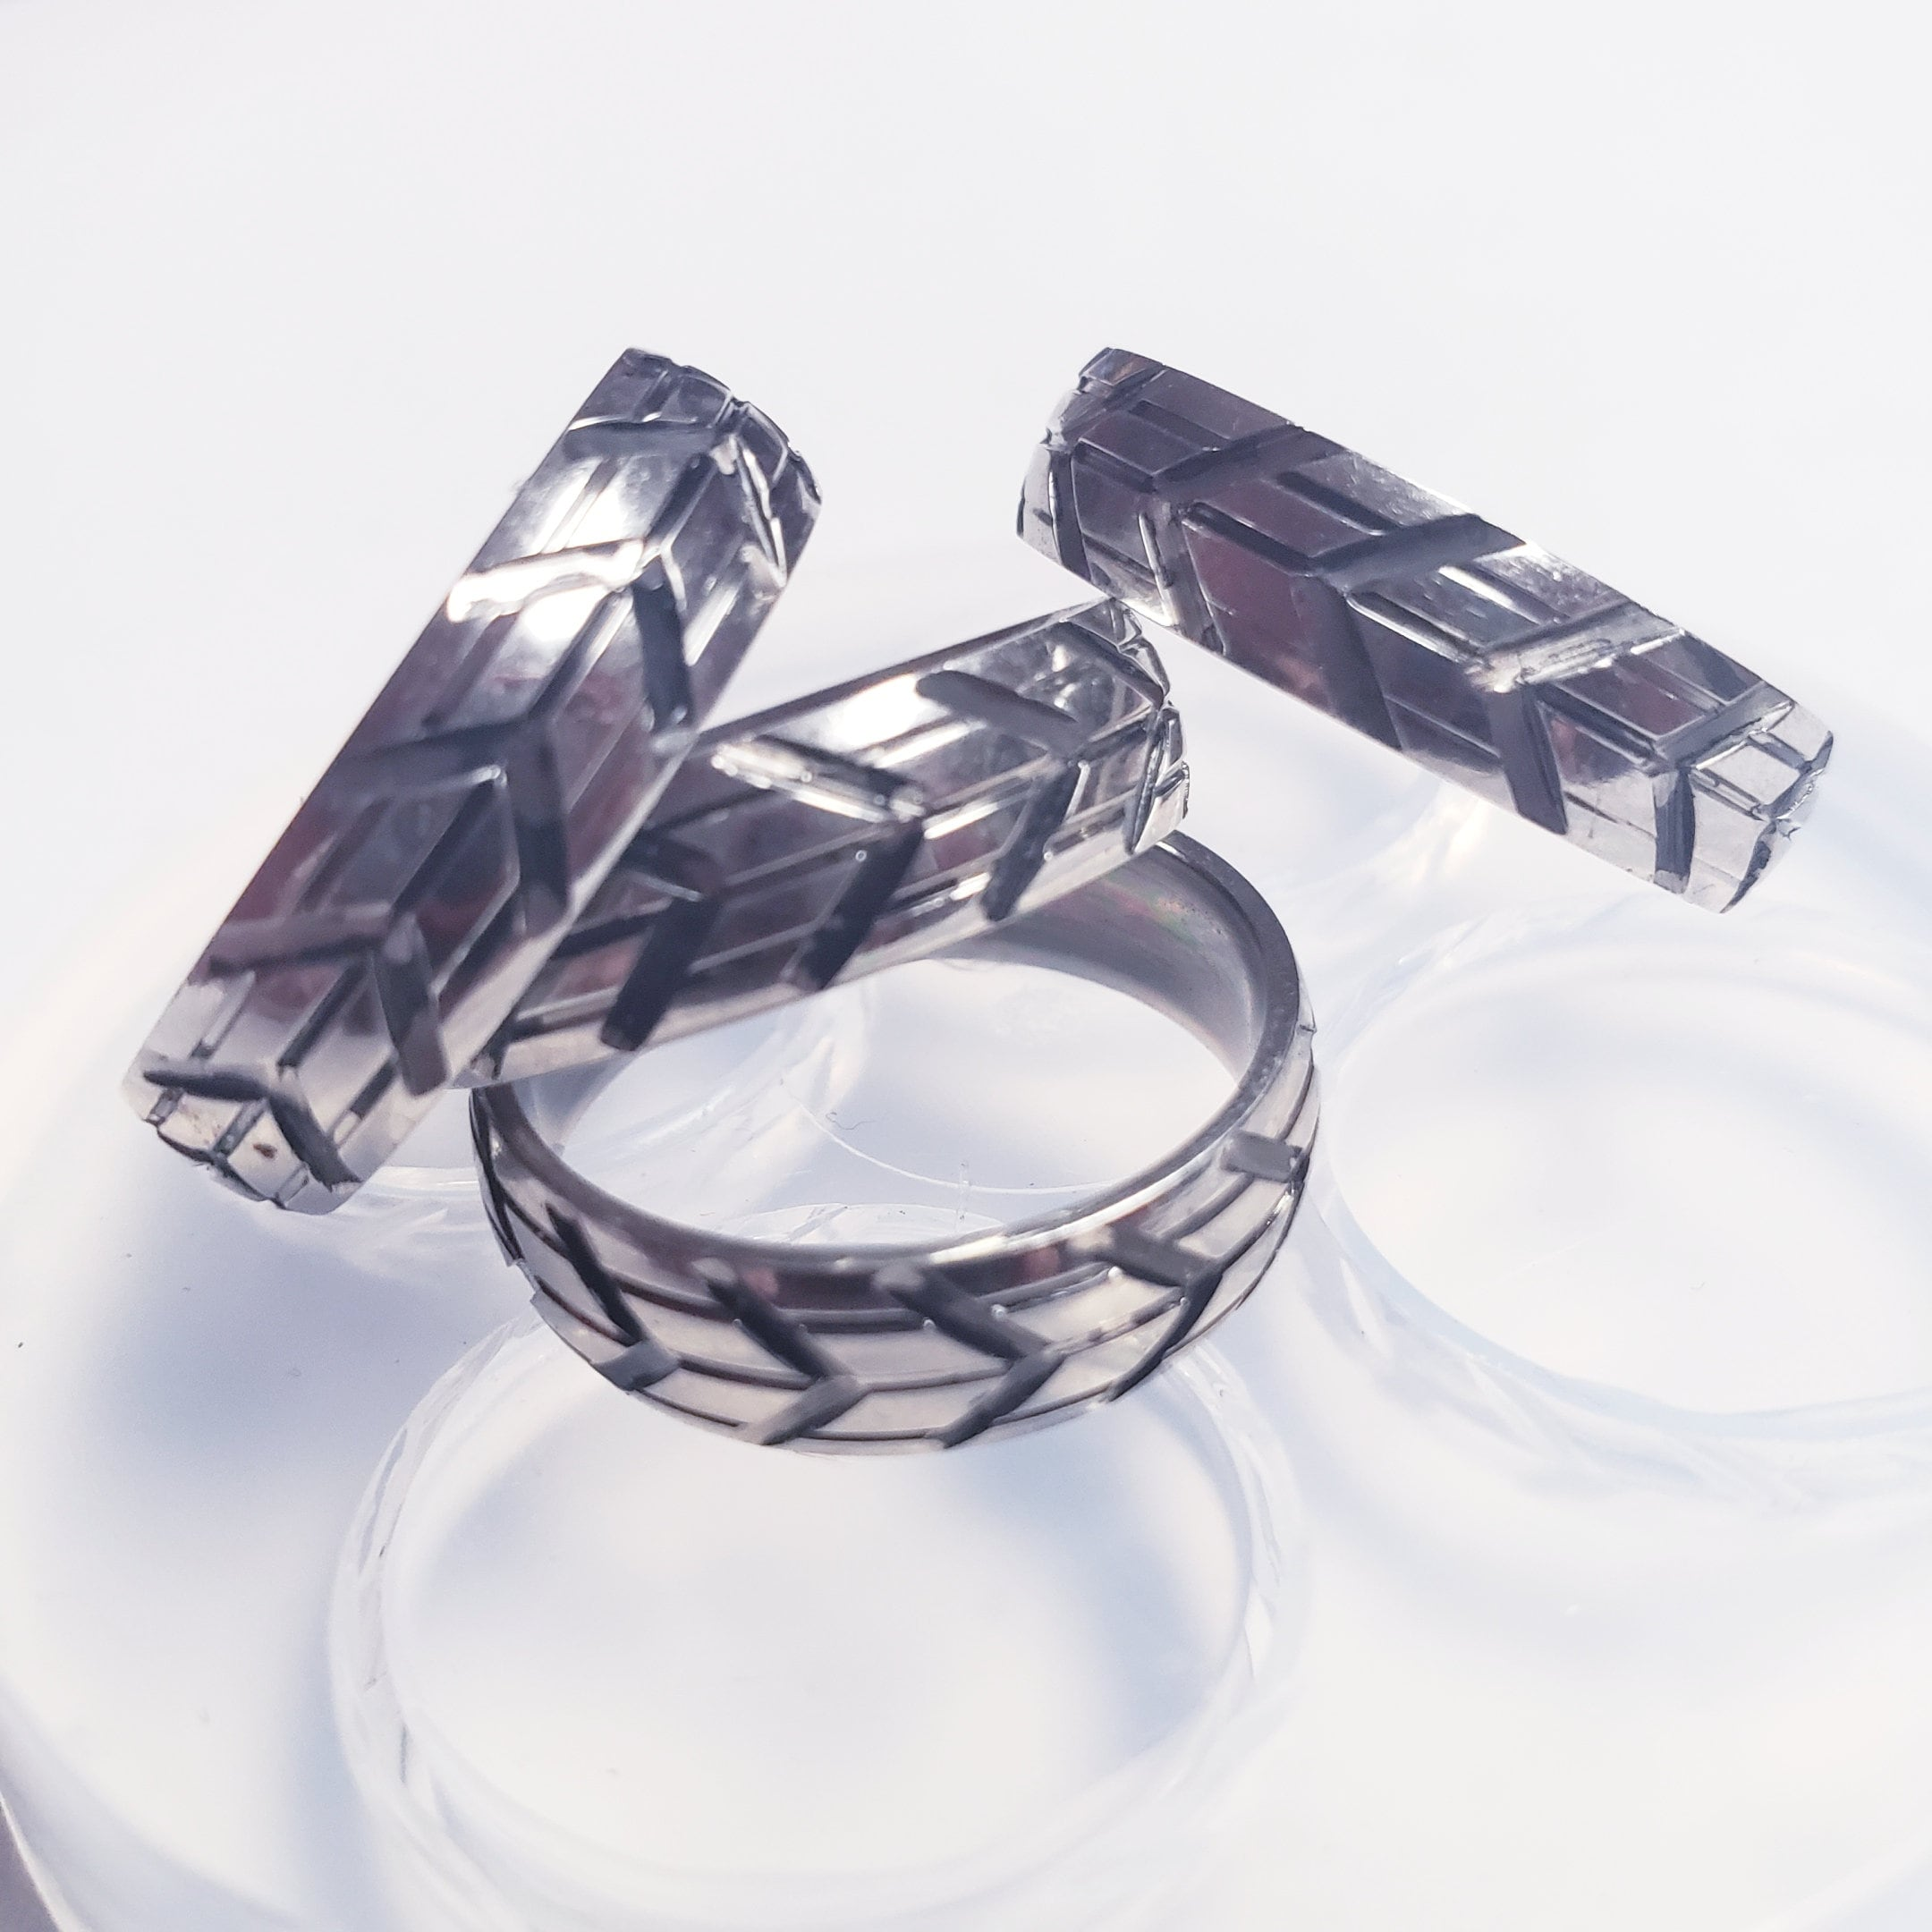 Clear handmade Silicone Mold for Ring size 7.5